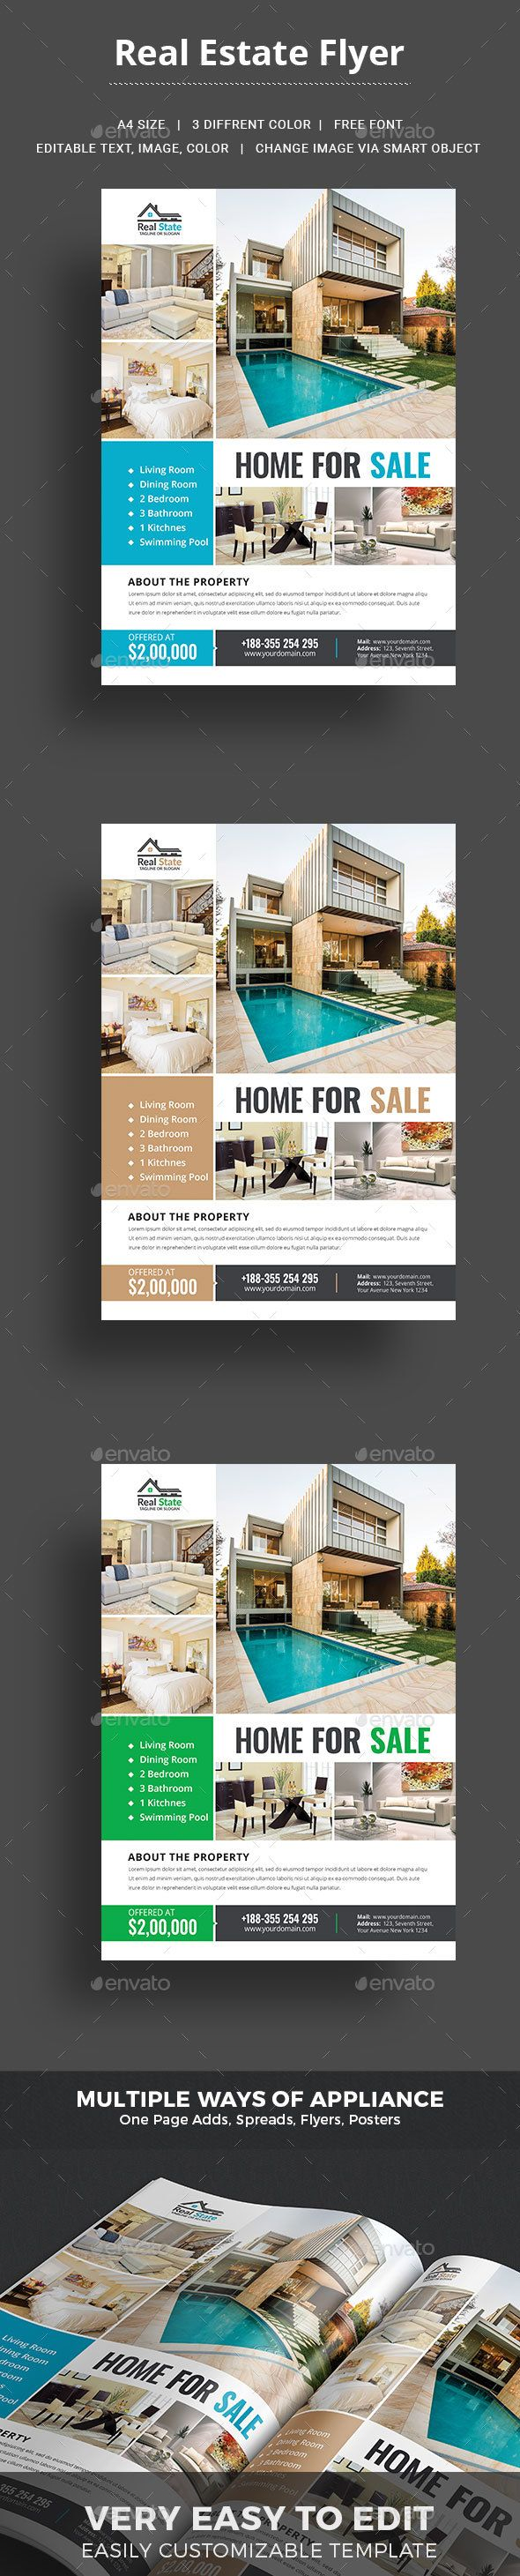 Real Estate Flyer Template | Grafikdesign, Katalog und Designs